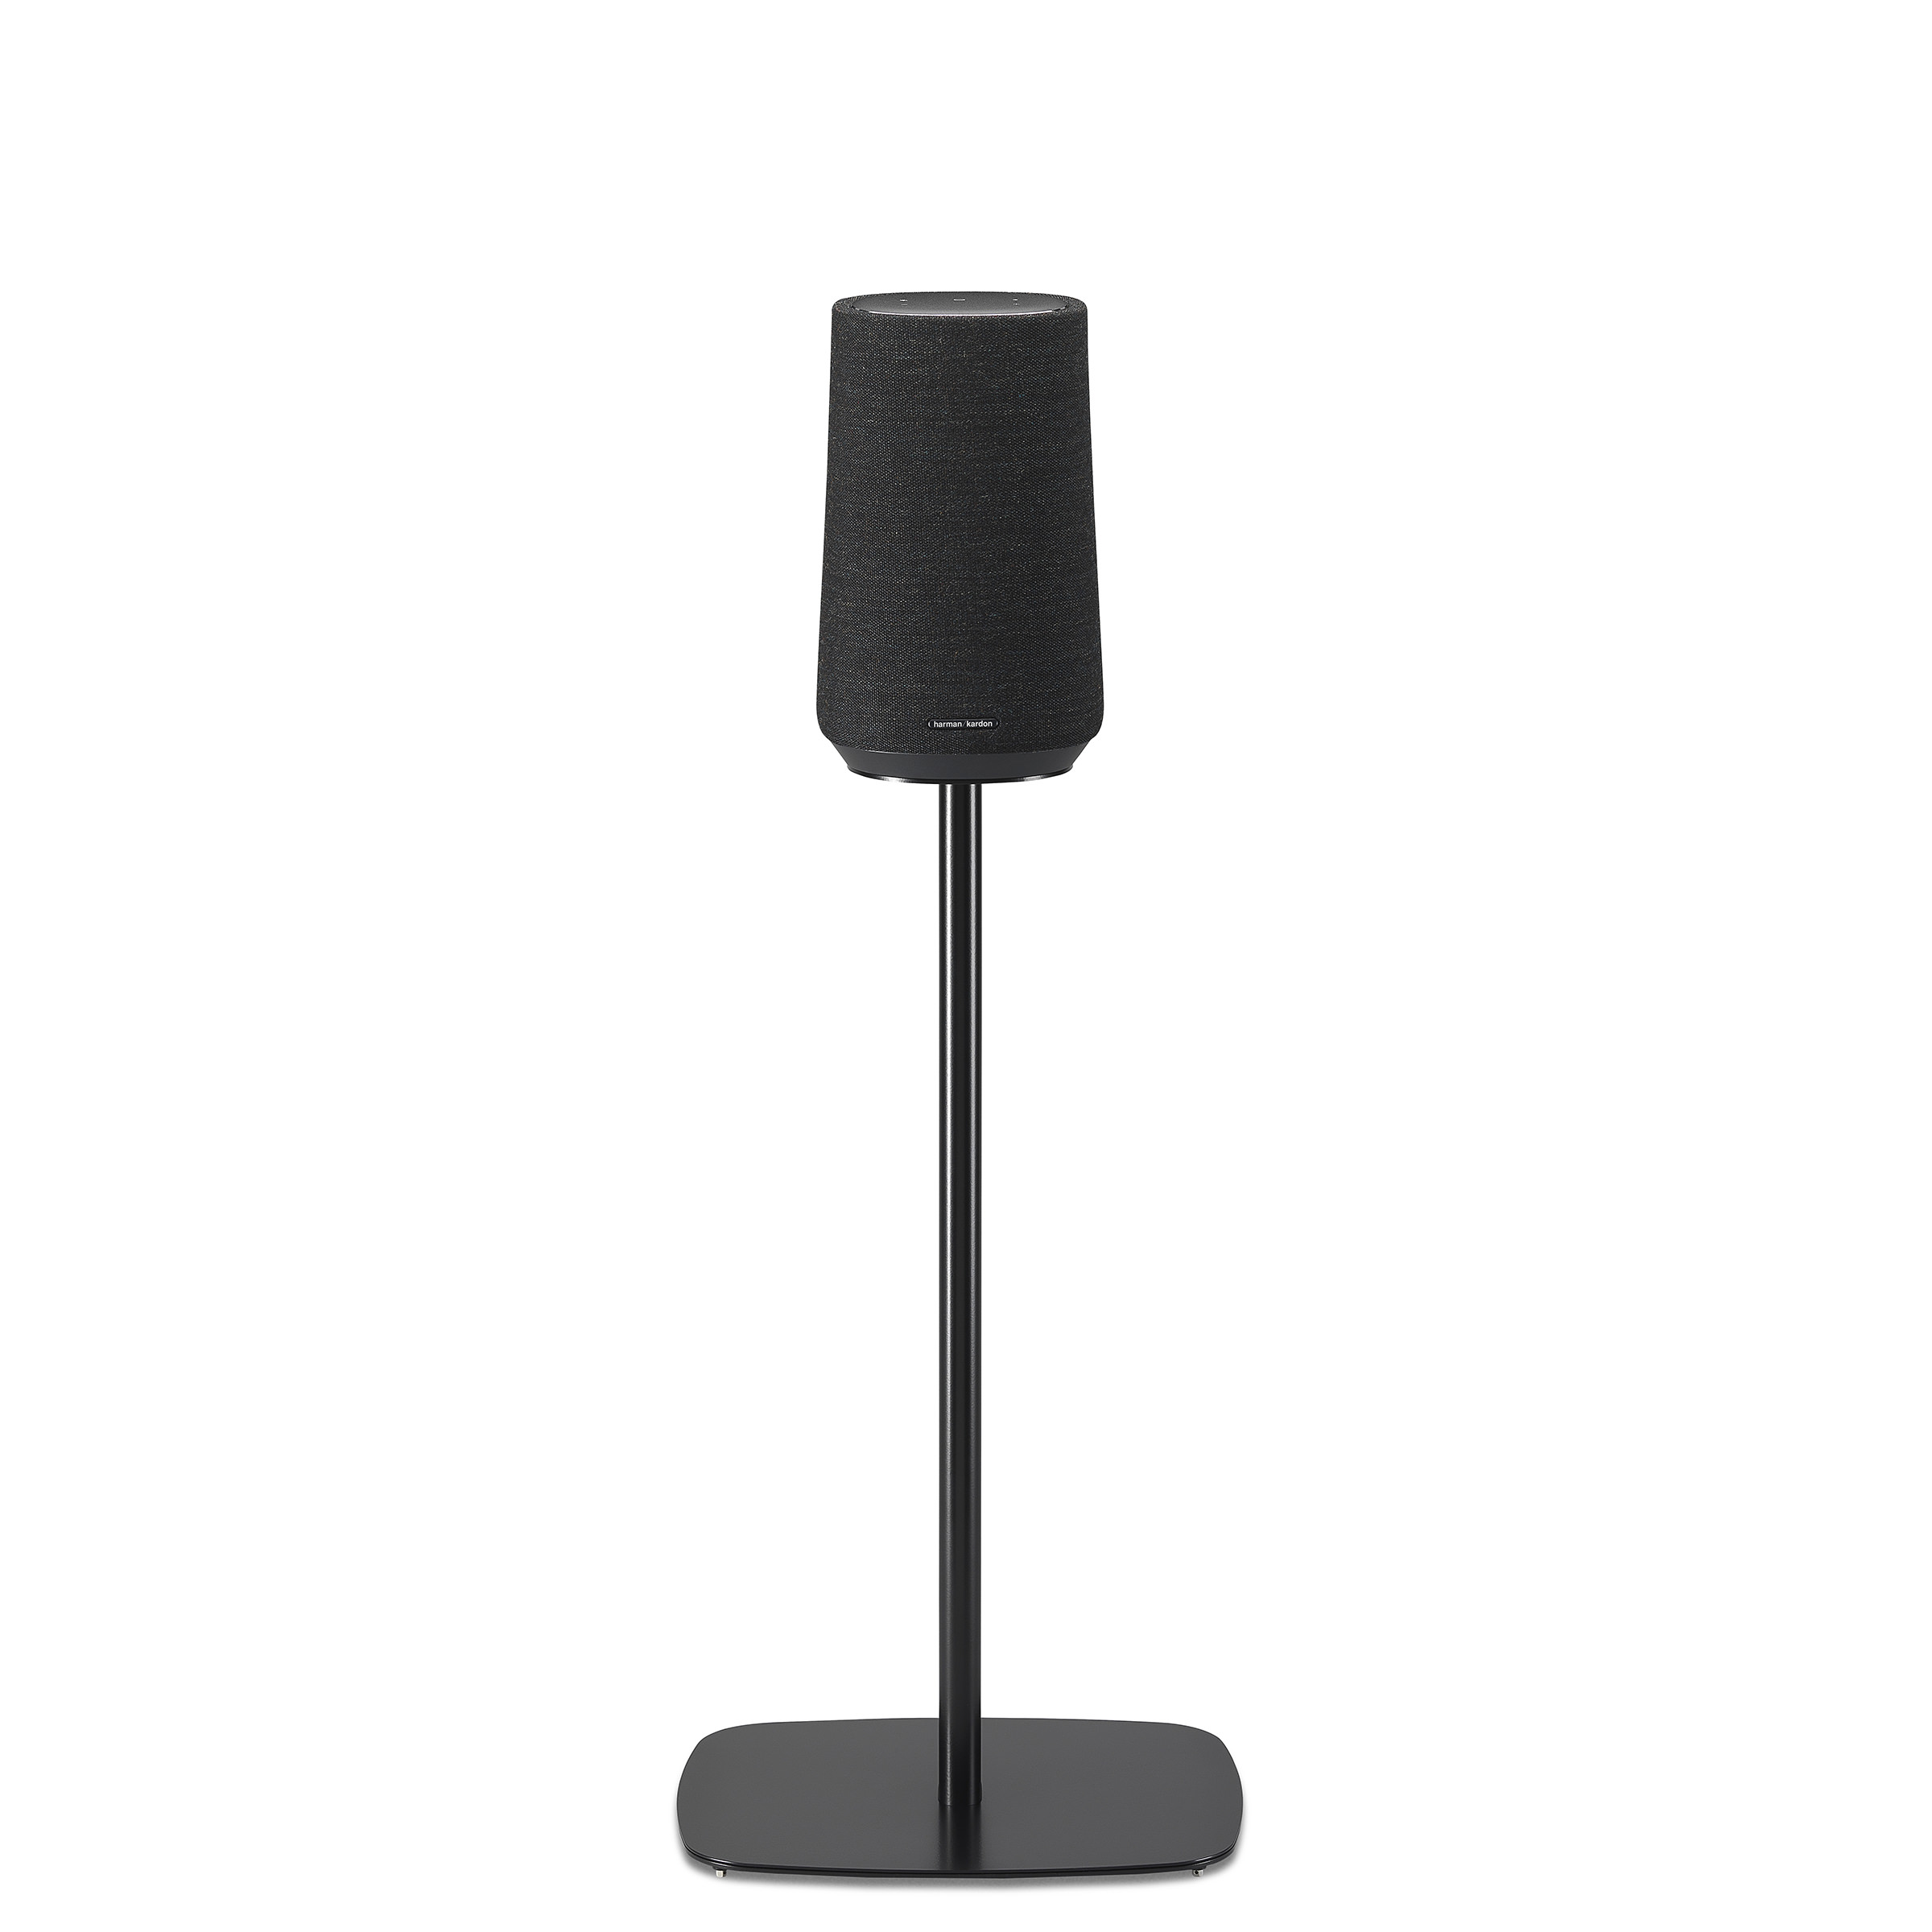 Harman Kardon Citation 100 standaard zwart 6